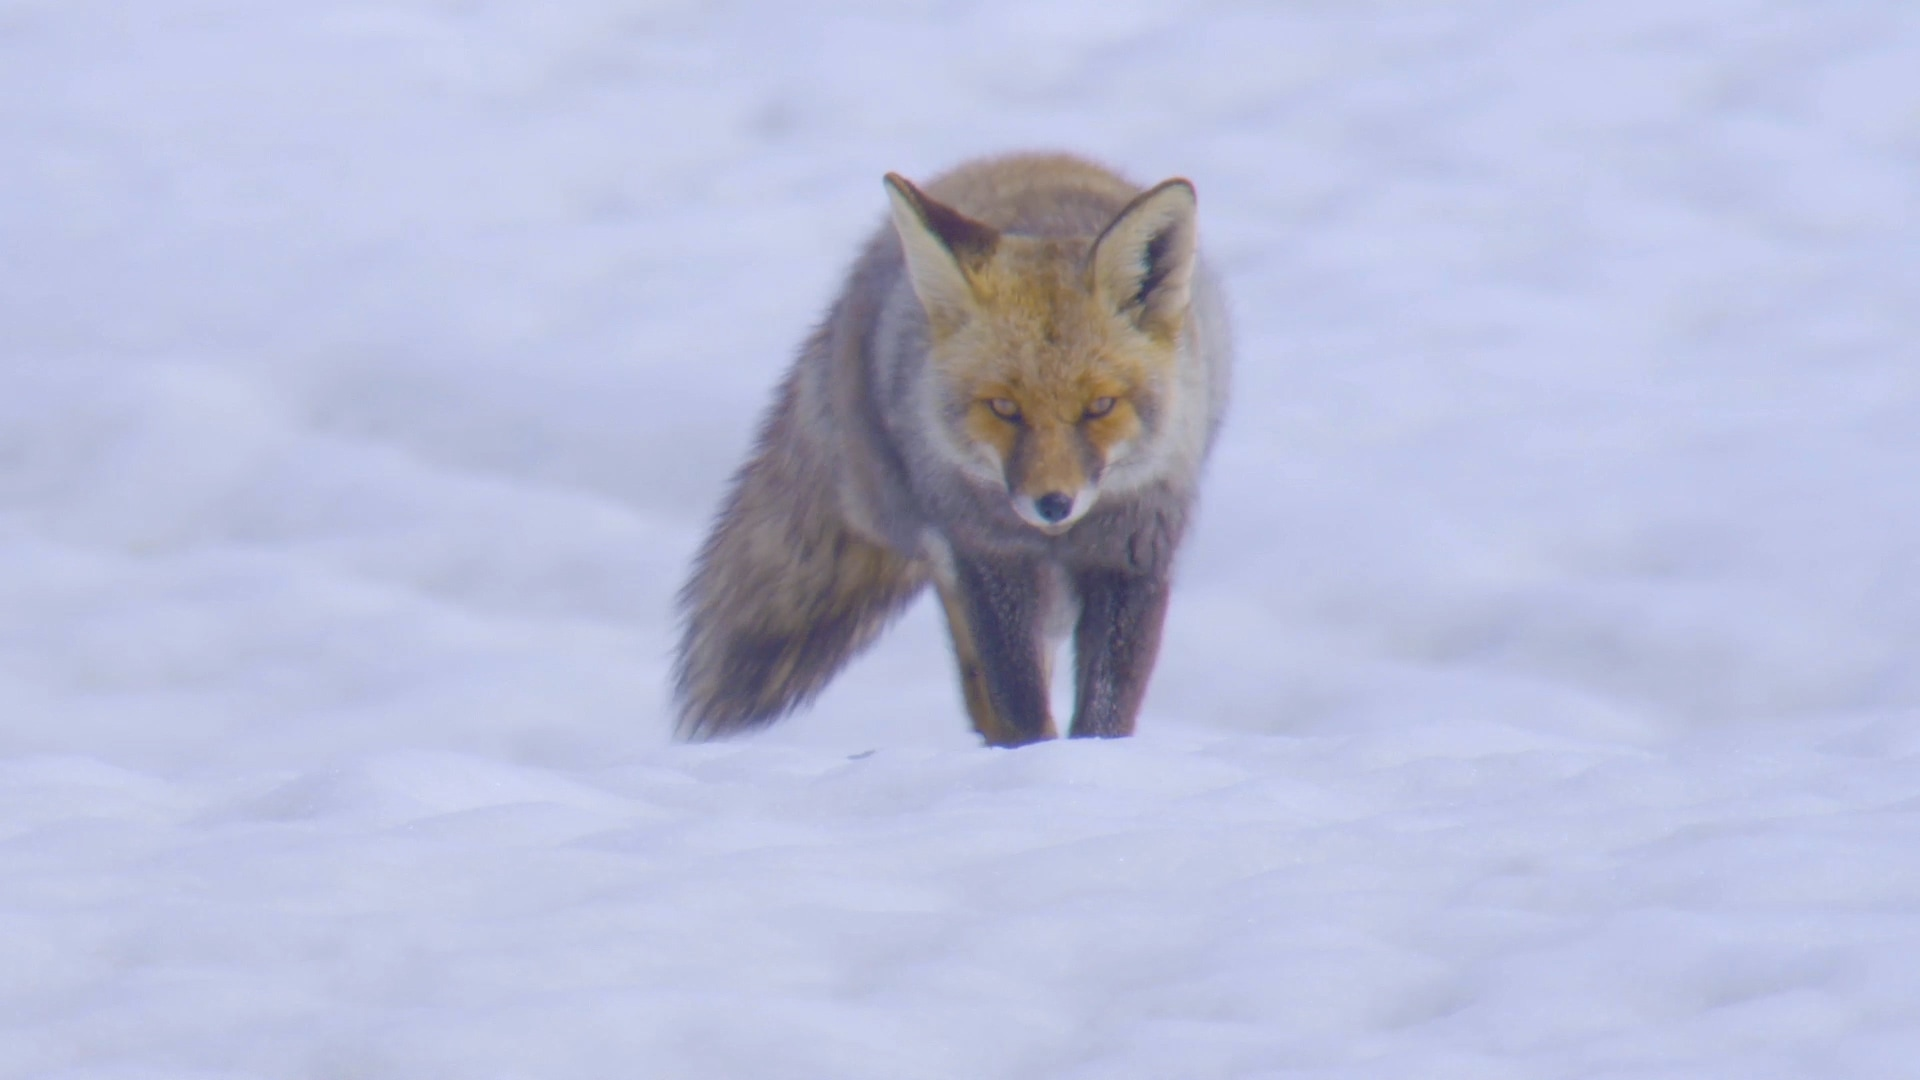 The Fox Trot: The Bushy-tailed Red Fox Goes on a Hunt